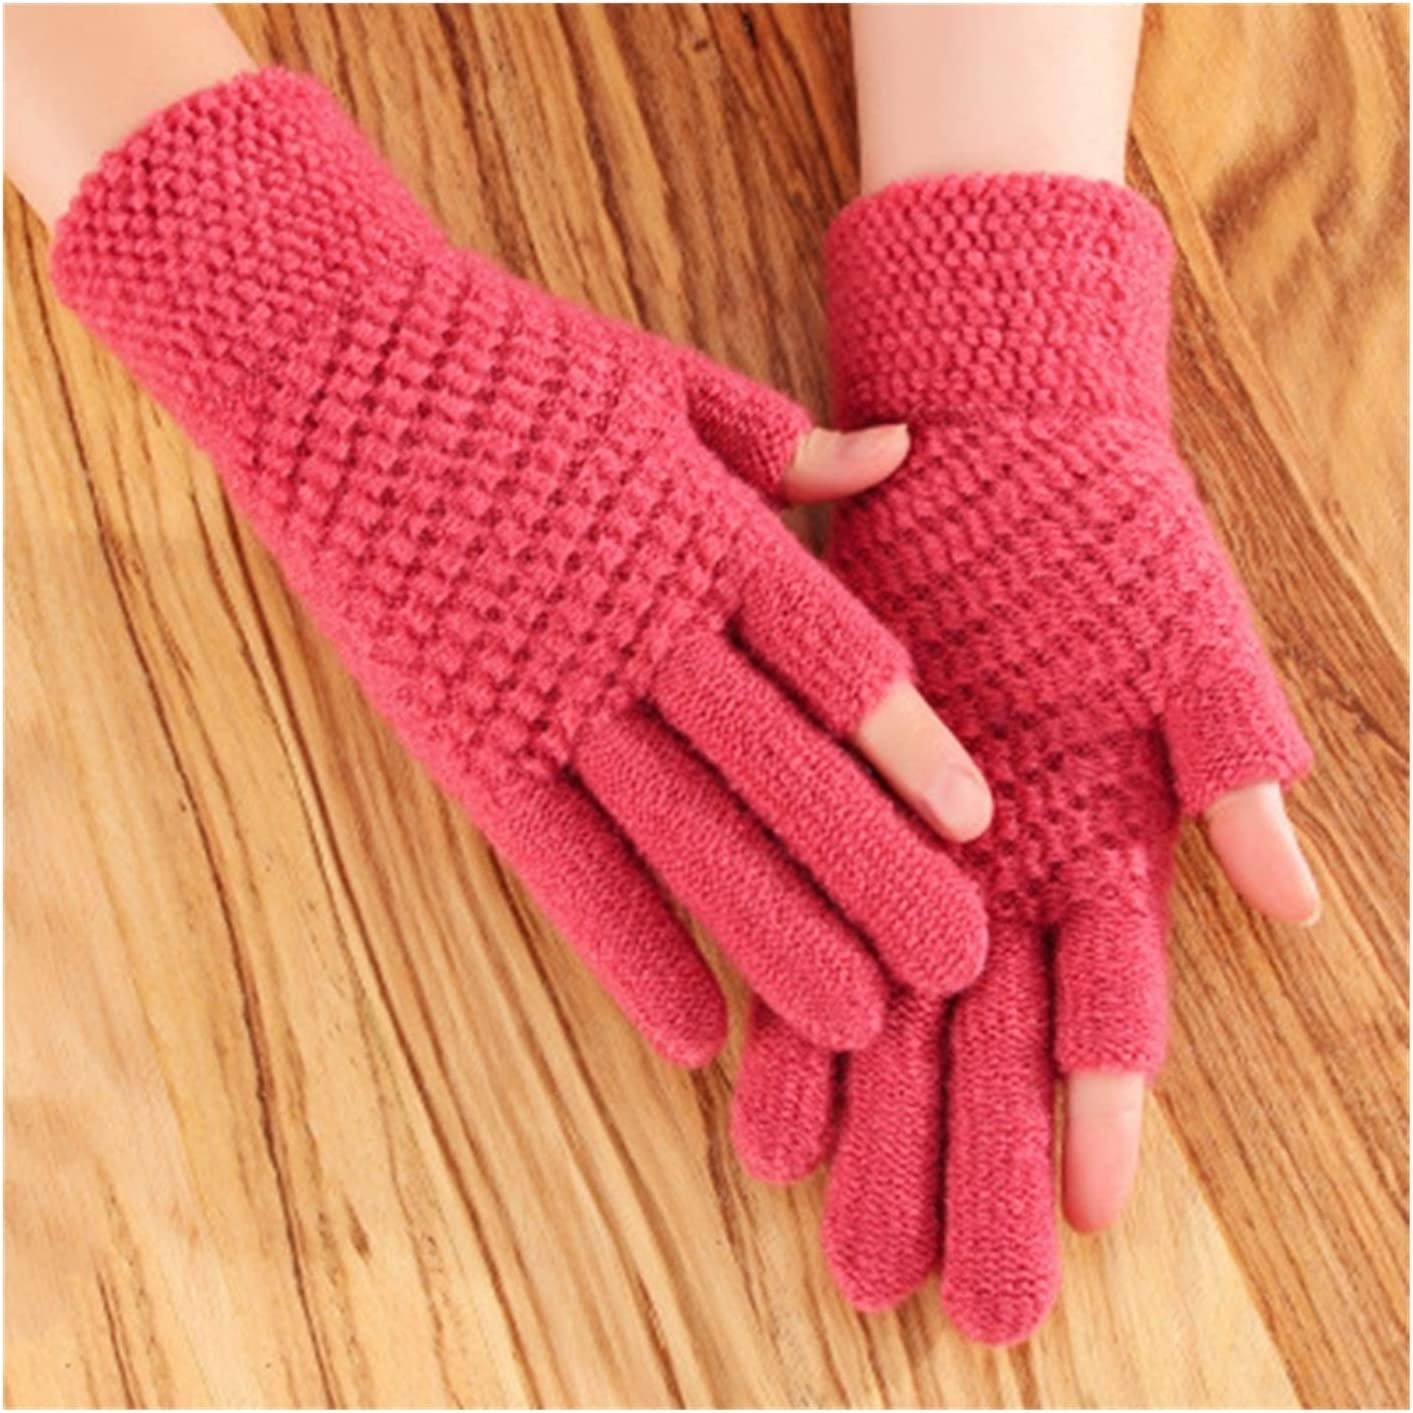 JBIVWW Unisex Half-Finger Cycling Mittens Women Winter Warm Thick Knit Fingerless Writing Touch Screen Driving Gloves (Color : Skin Red)